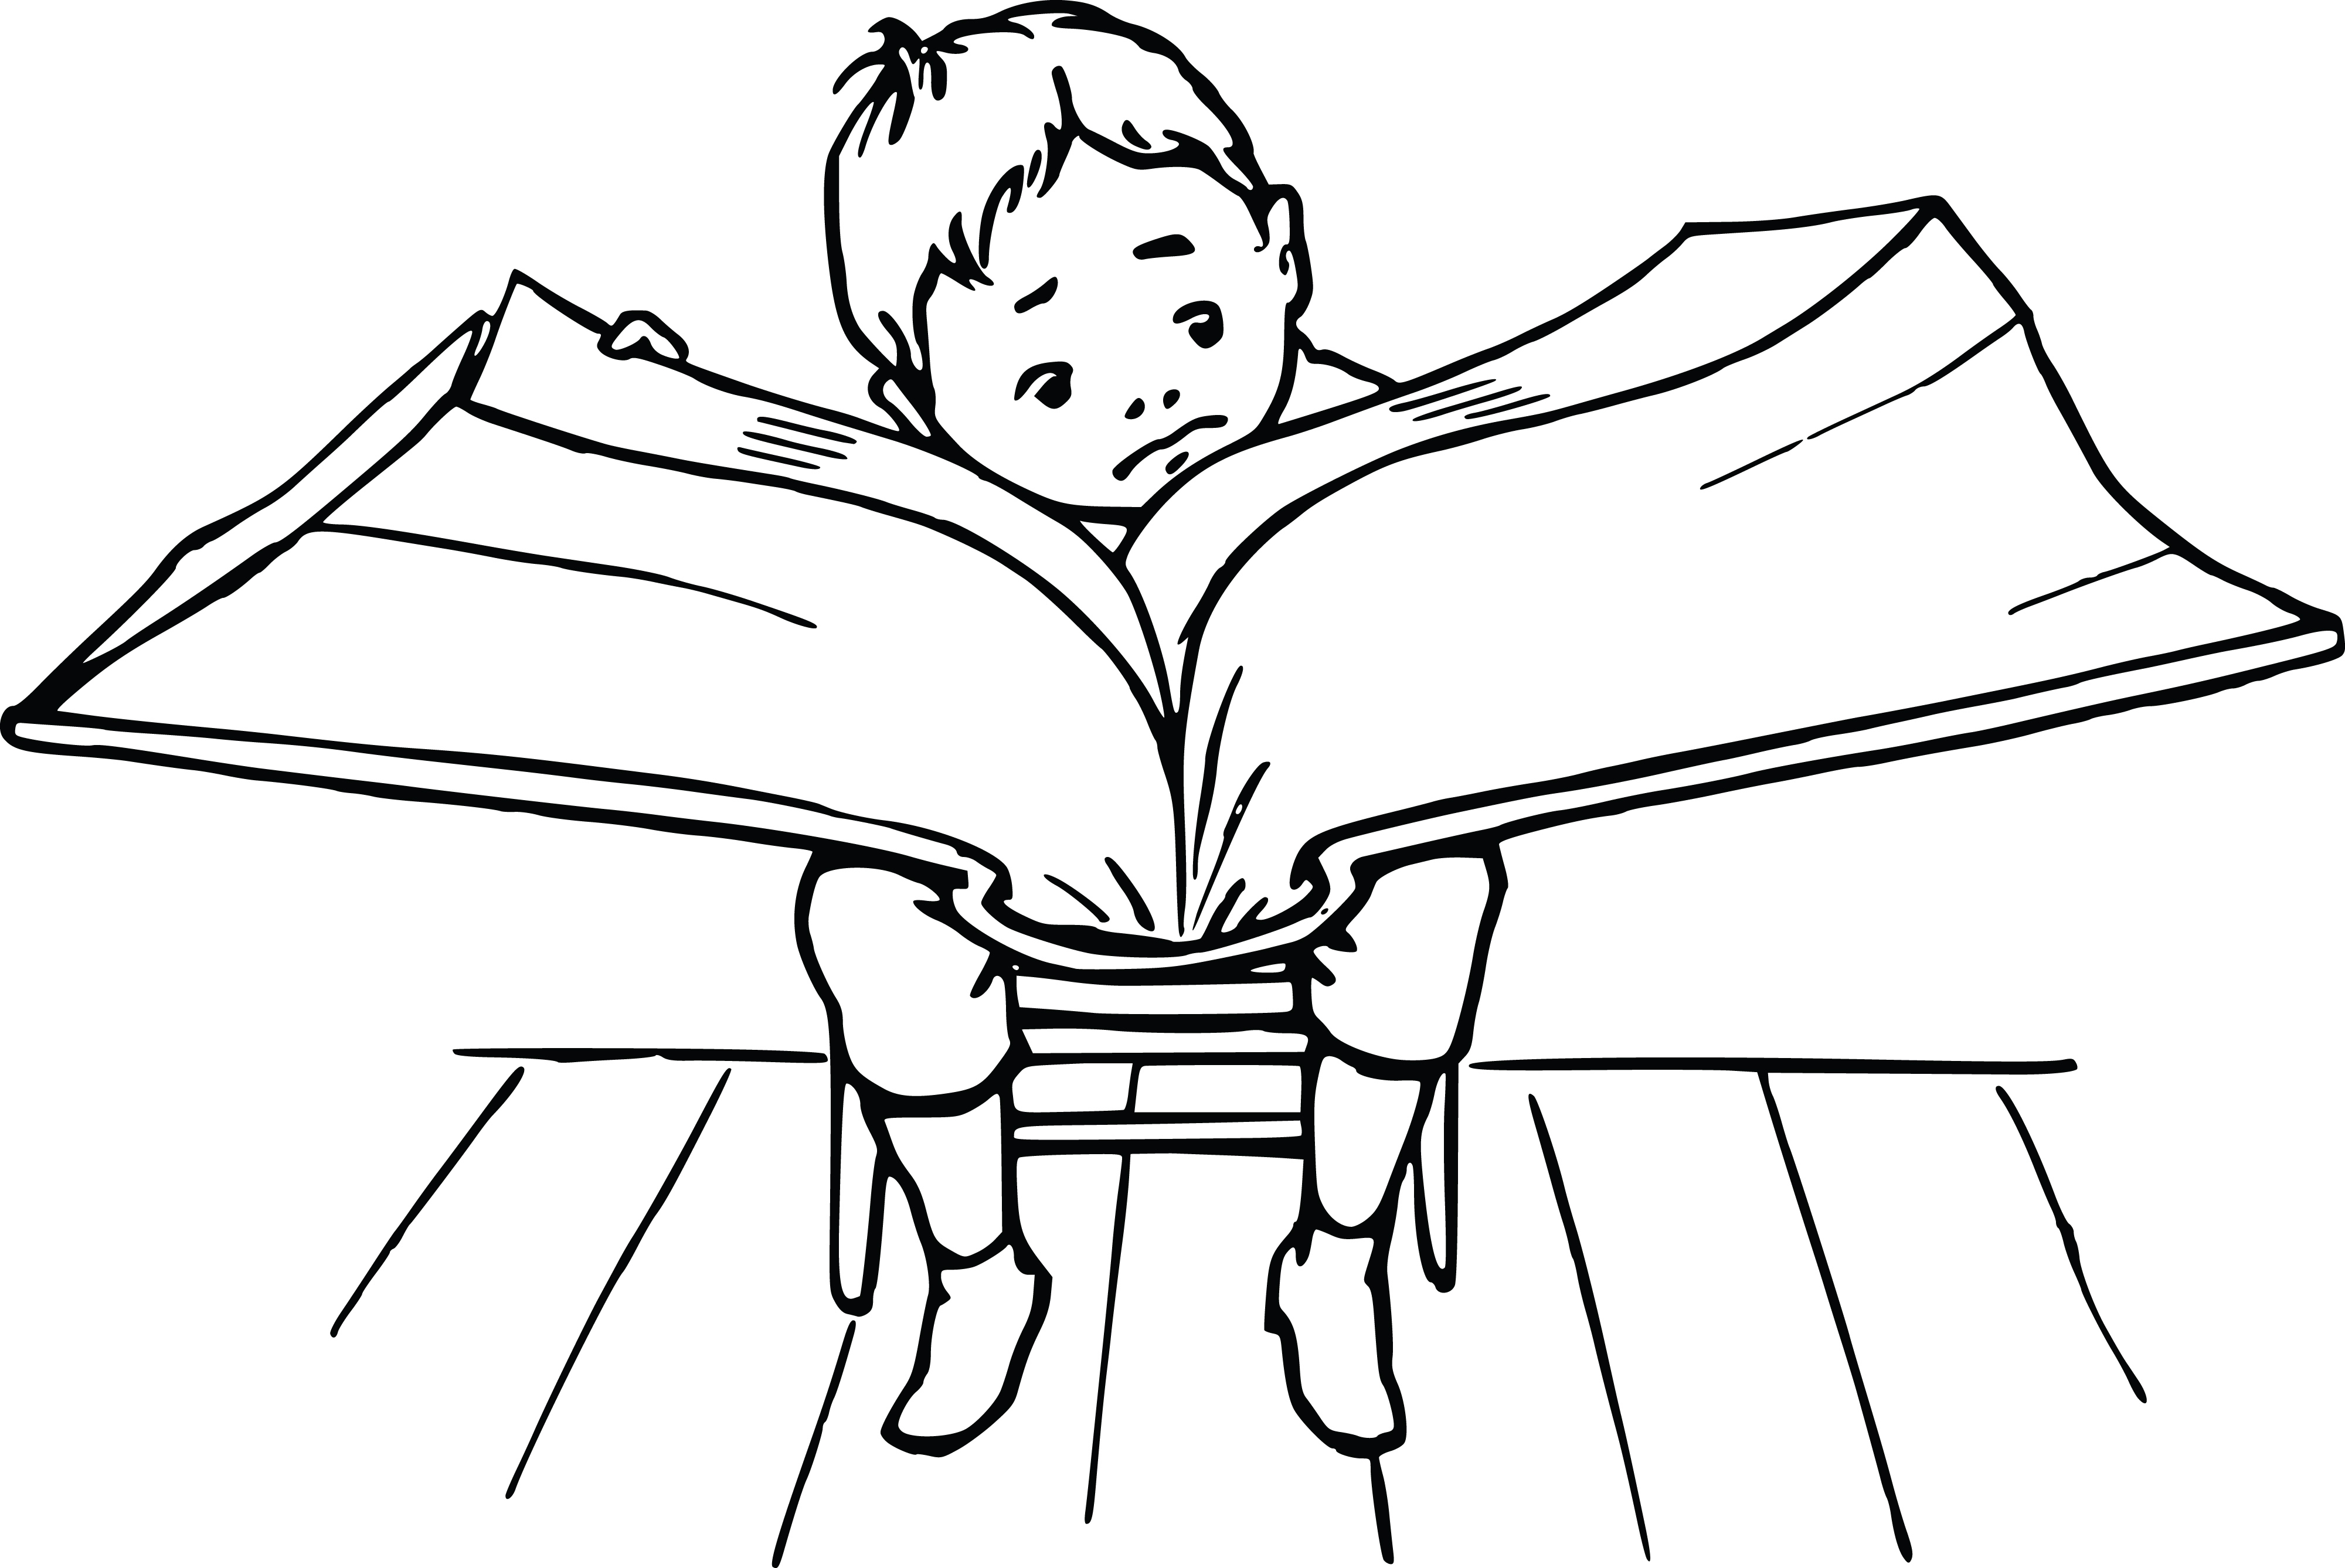 Free Clipart Of A boy reading a giant book